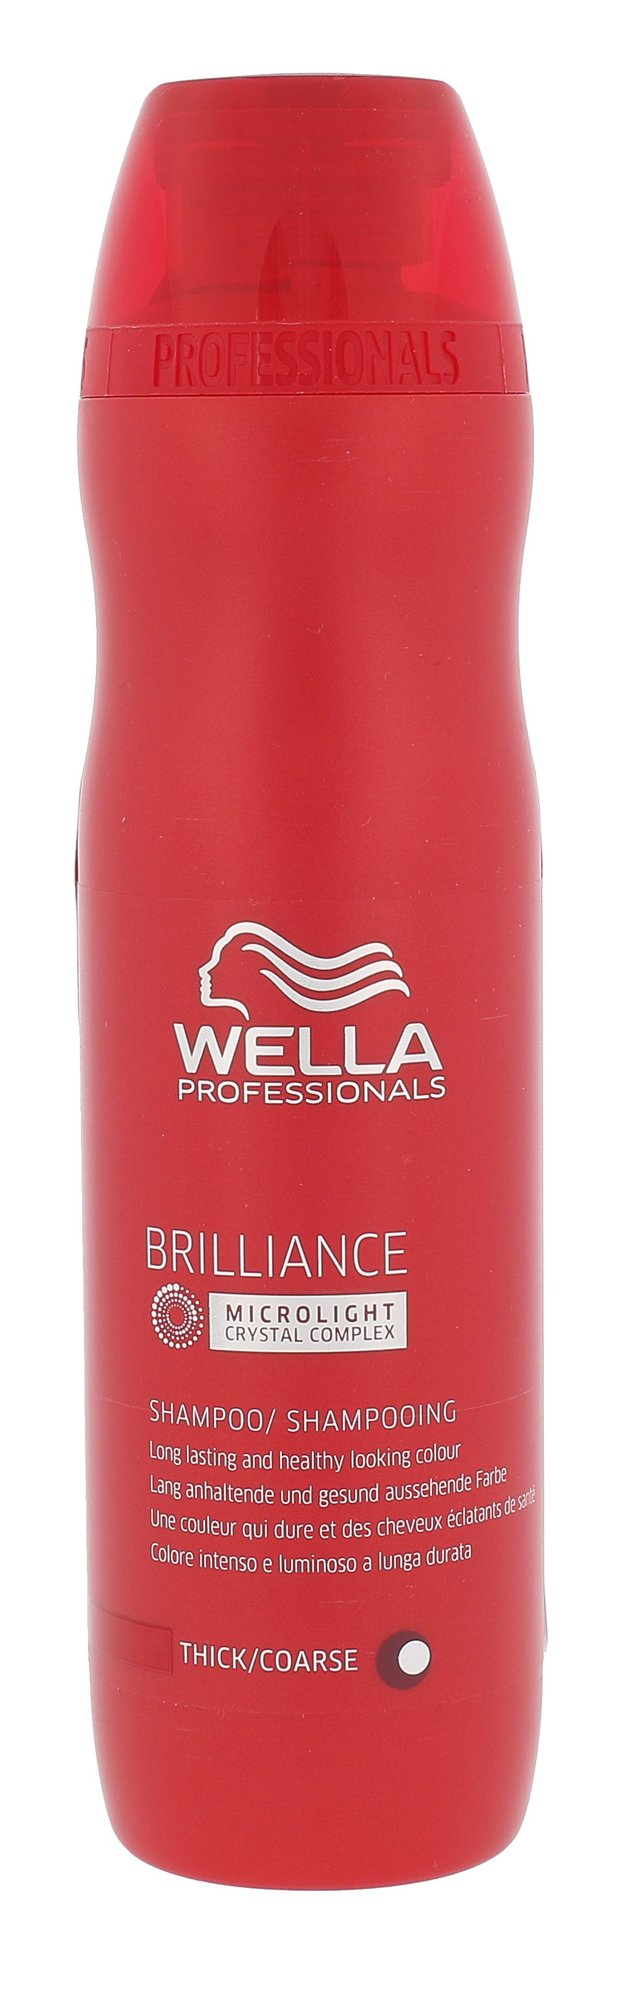 Wella Brilliance Cosmetic 250ml